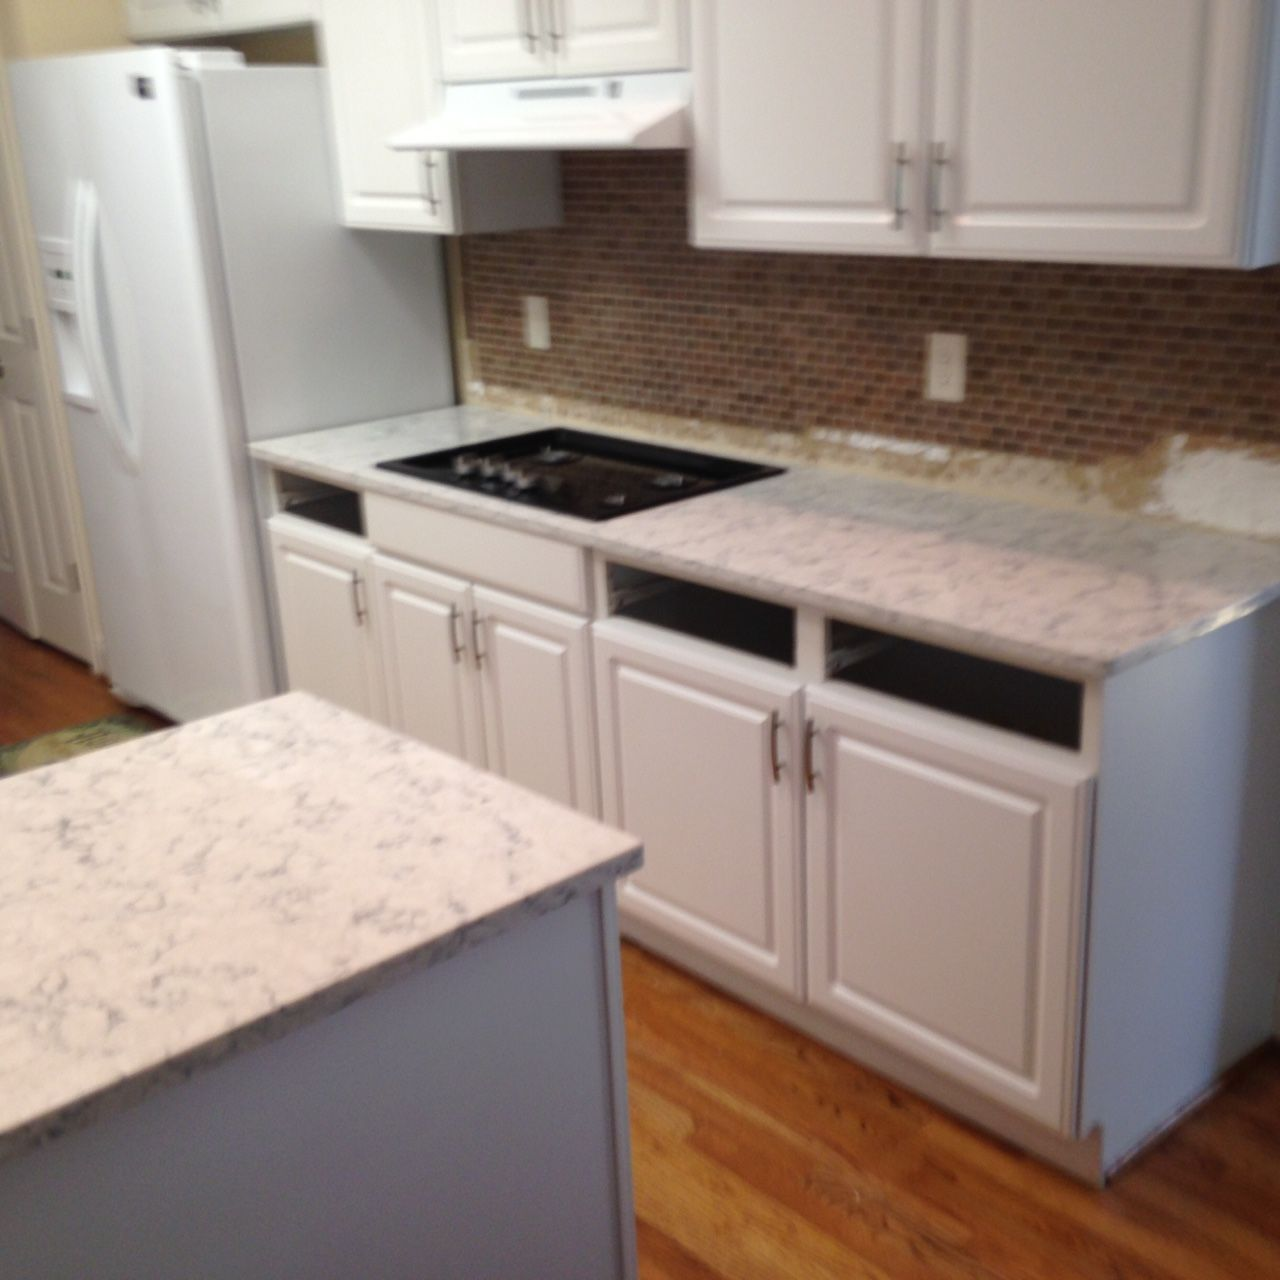 Superior Rococo LG Viatera Quartz Kitchen Countertop Install For The Purdy Family.  Knoxvilleu0027s Stone Interiors.